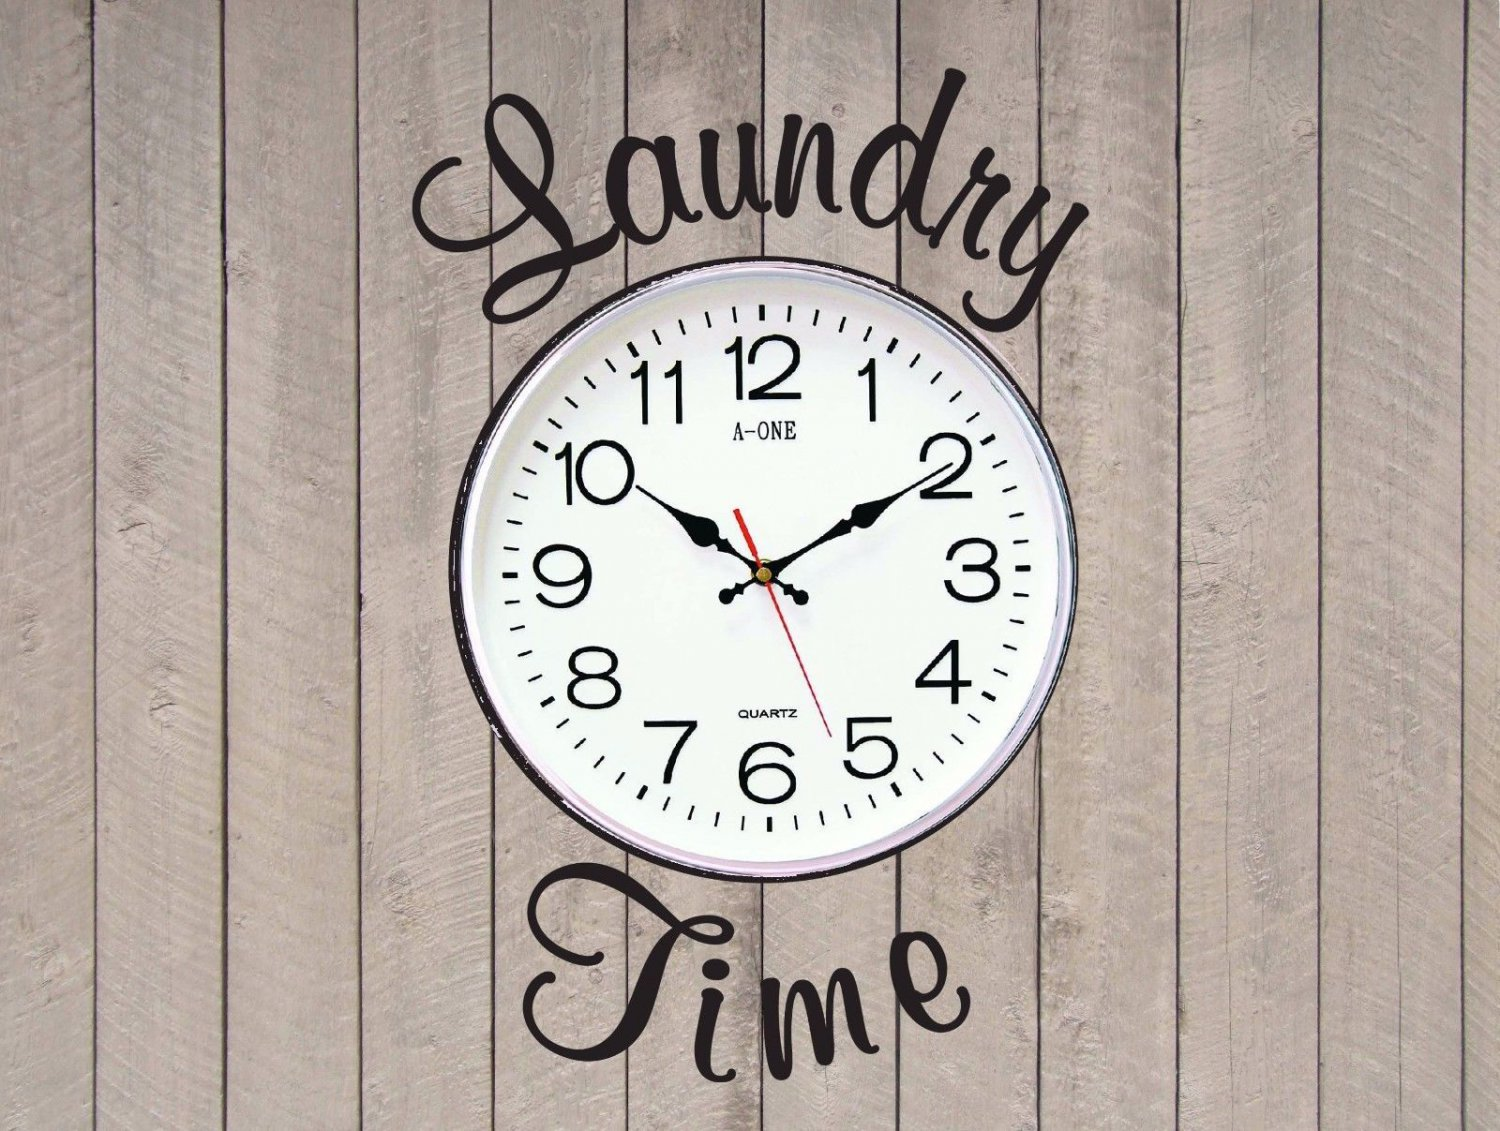 """Laundry Time Room Vinyl Wall Quote Sticker Decal 10""""w (Clock Not Included)"""